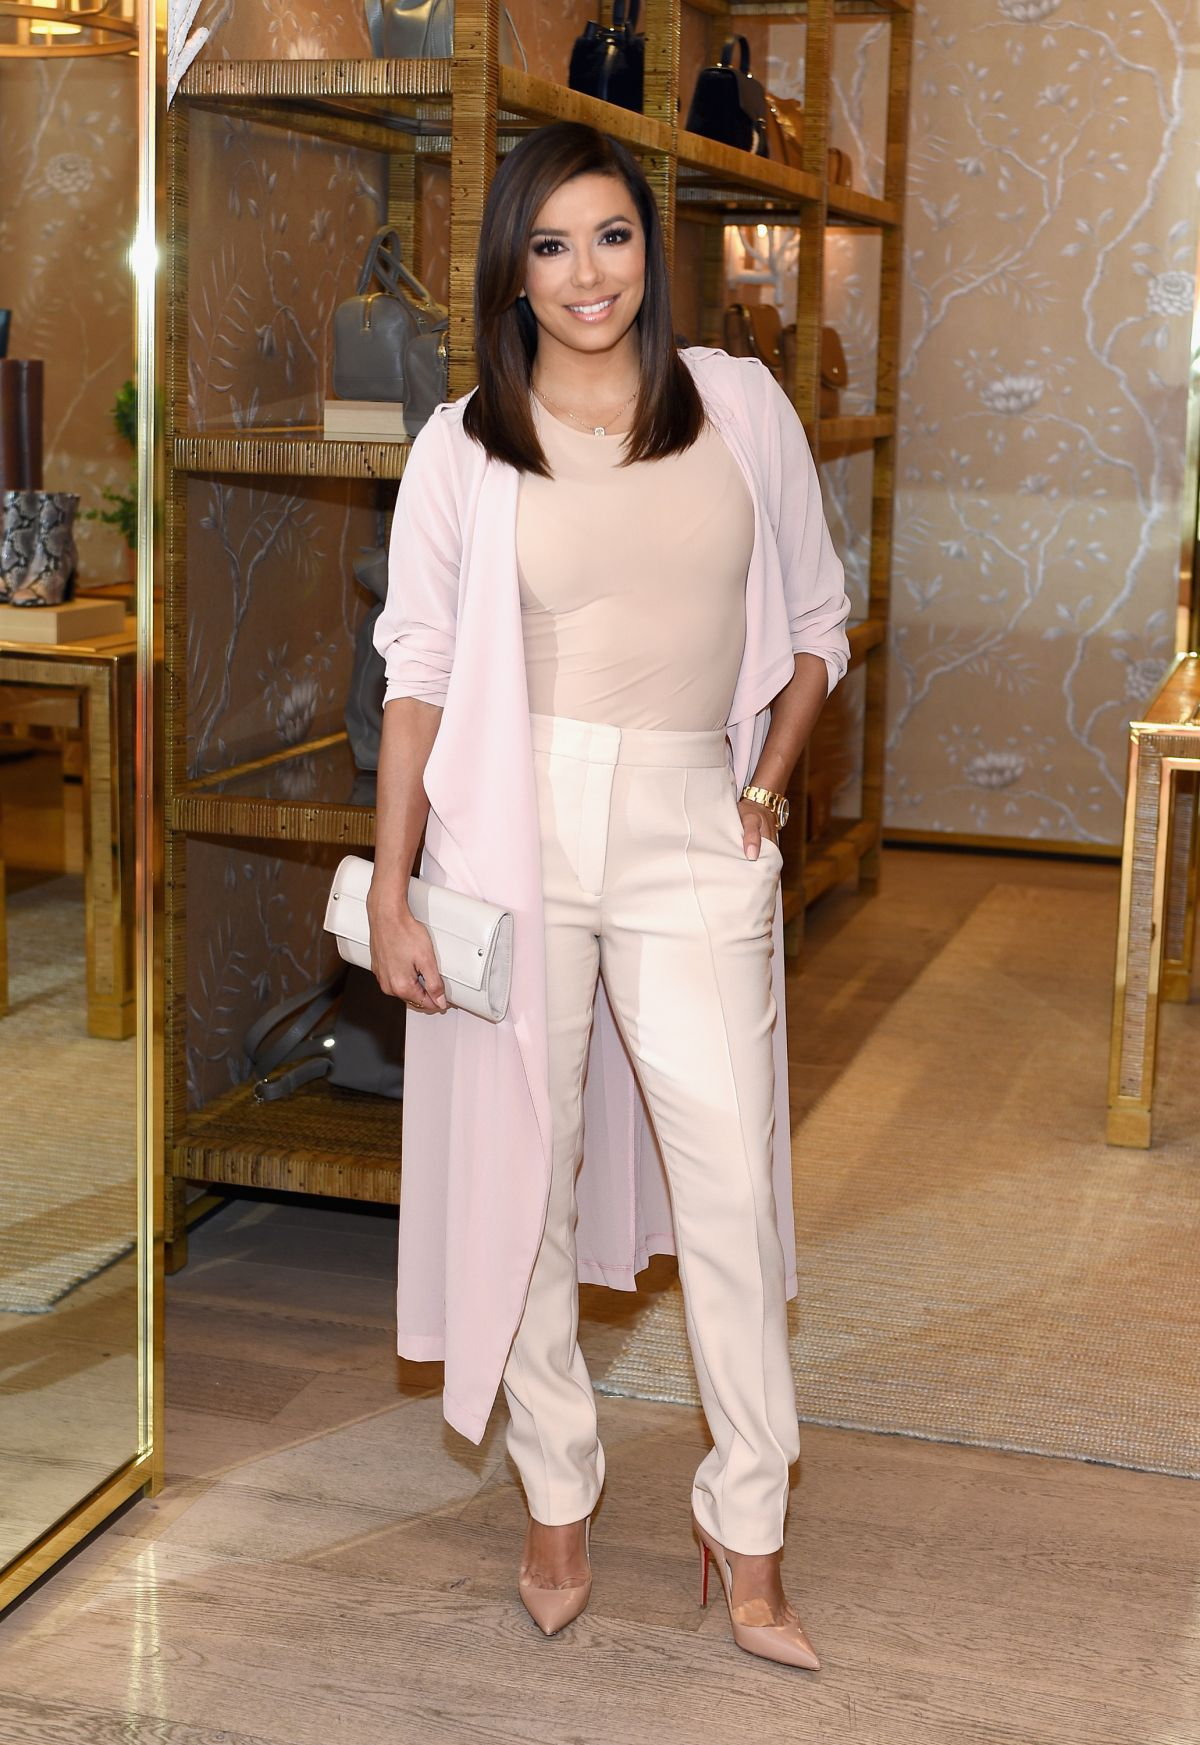 EVA LONGORIA at Glamour Women to Watch Lunch at Tory Burch 09/18/2015